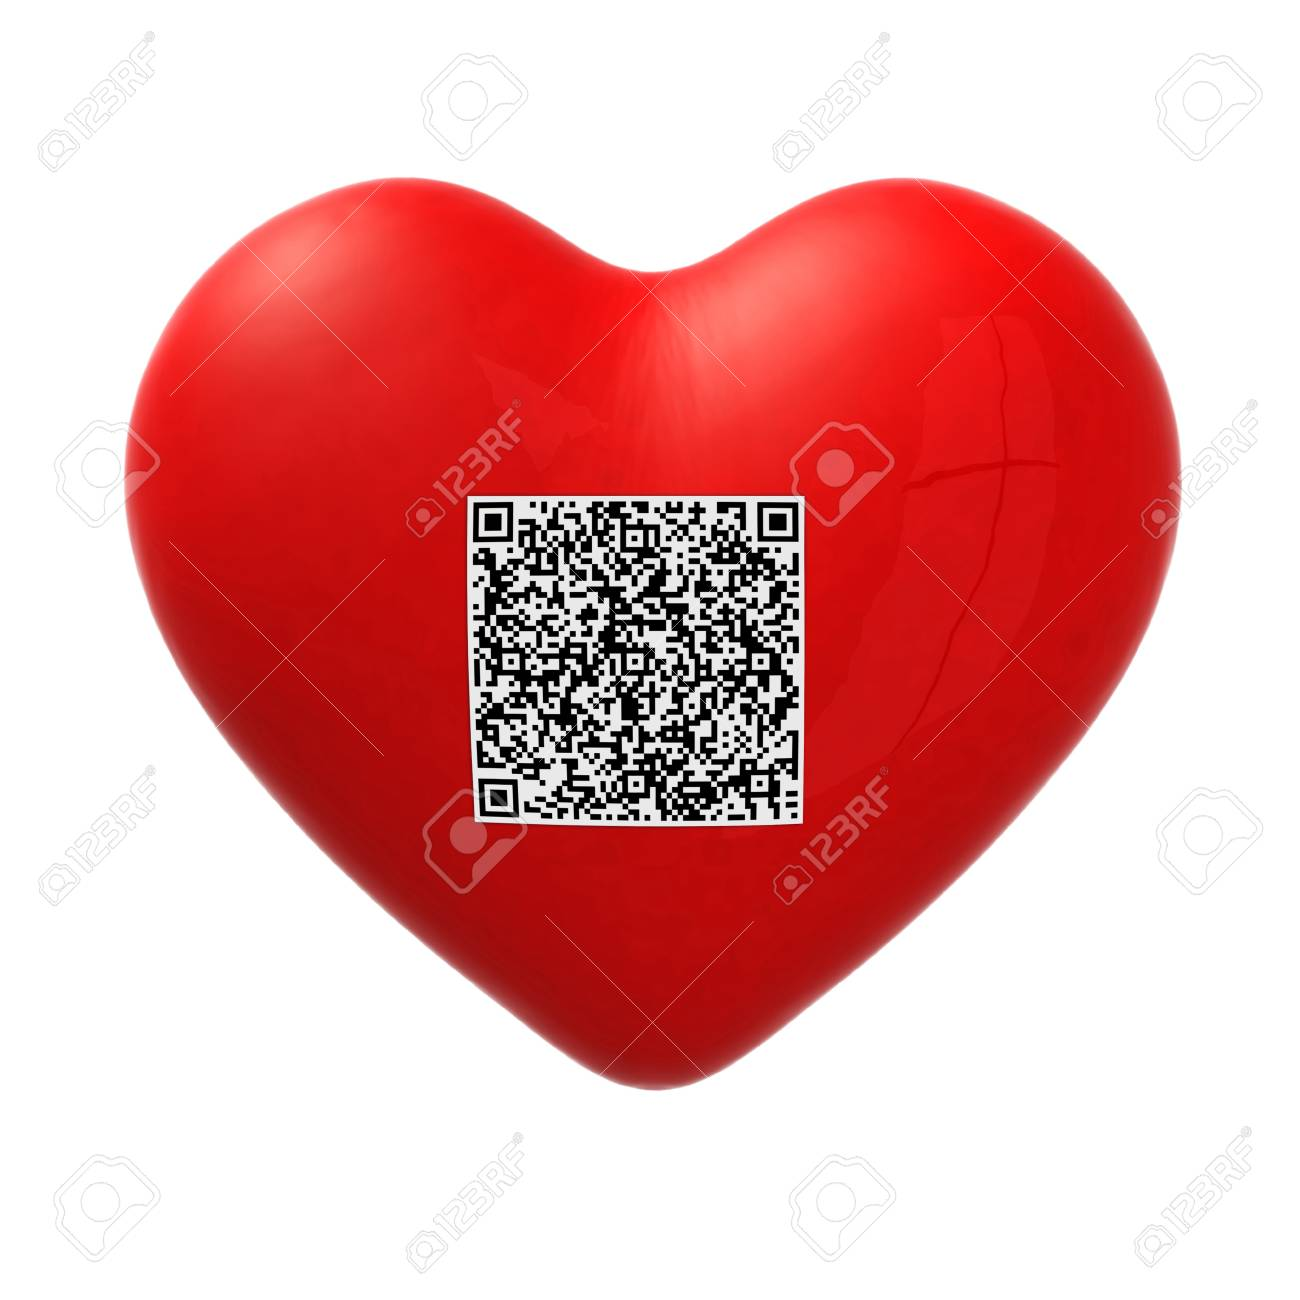 red heart with qr code, 3d illustration Stock Photo - 15817156